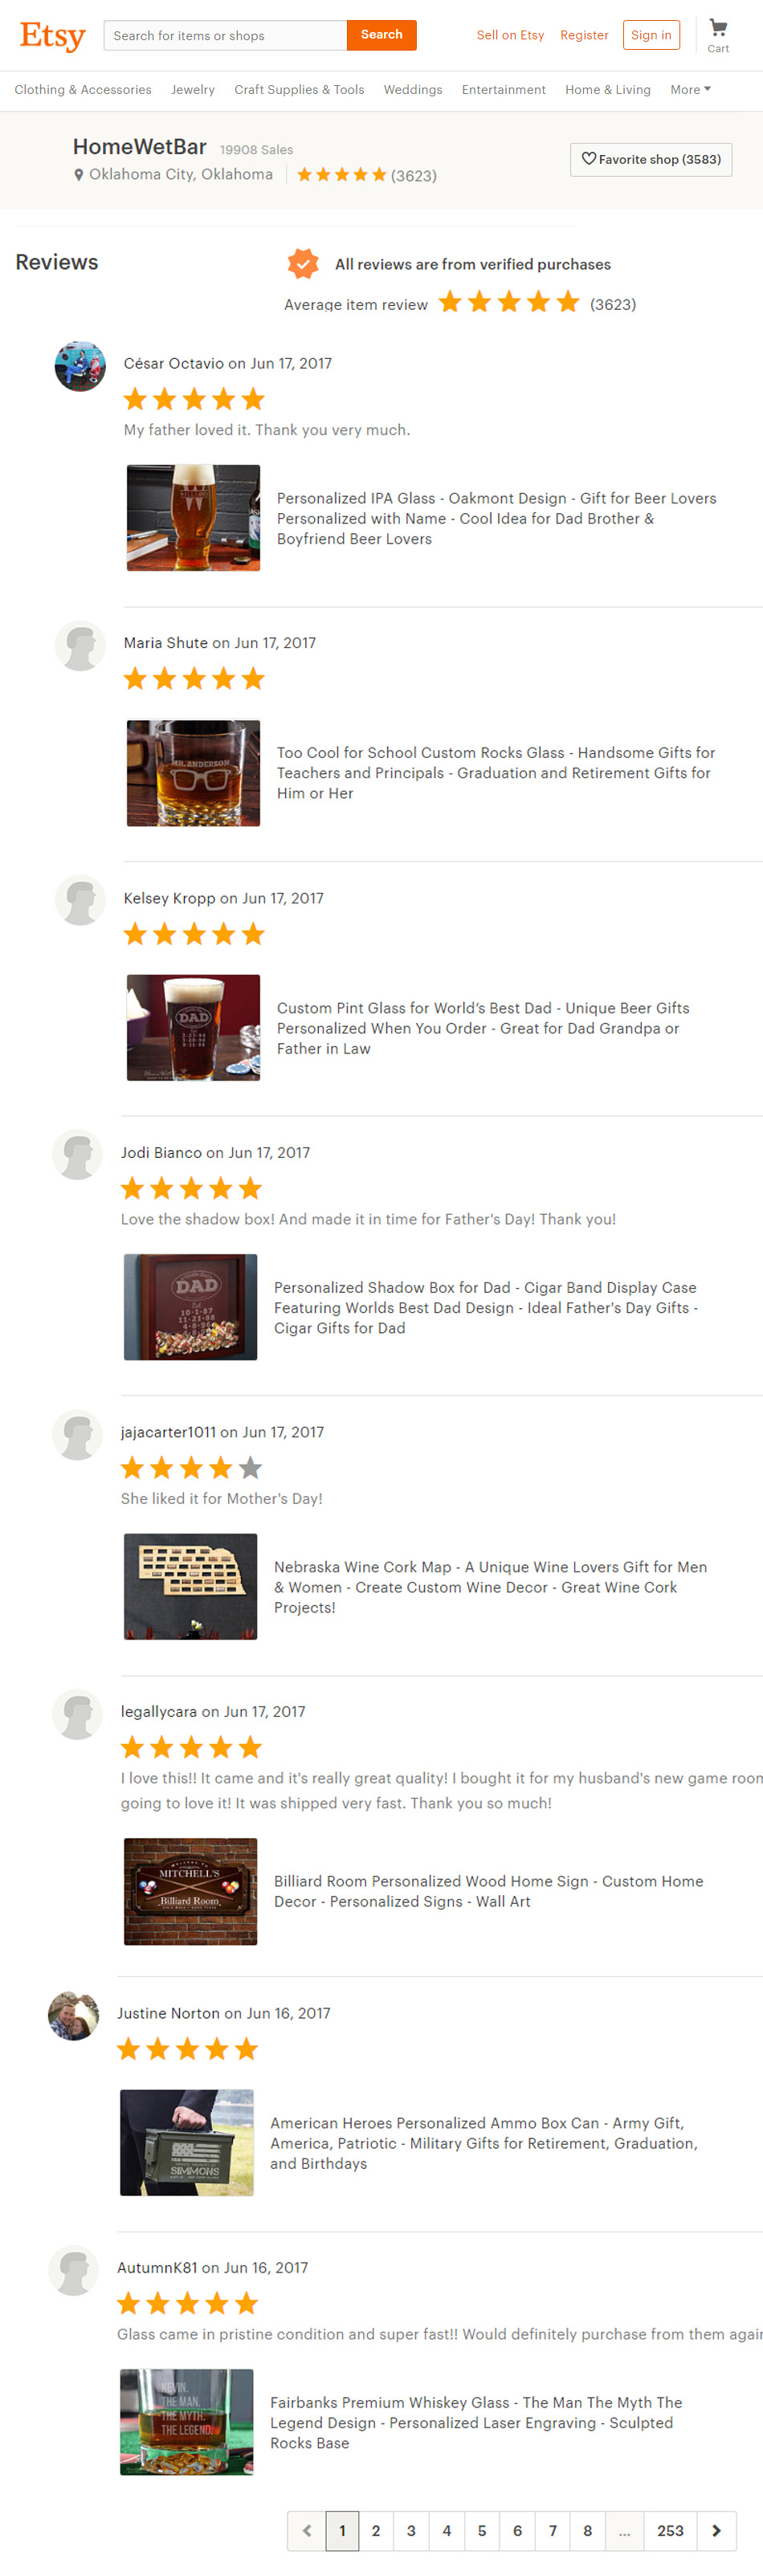 homewetbar reviews rated by real customers on Etsy